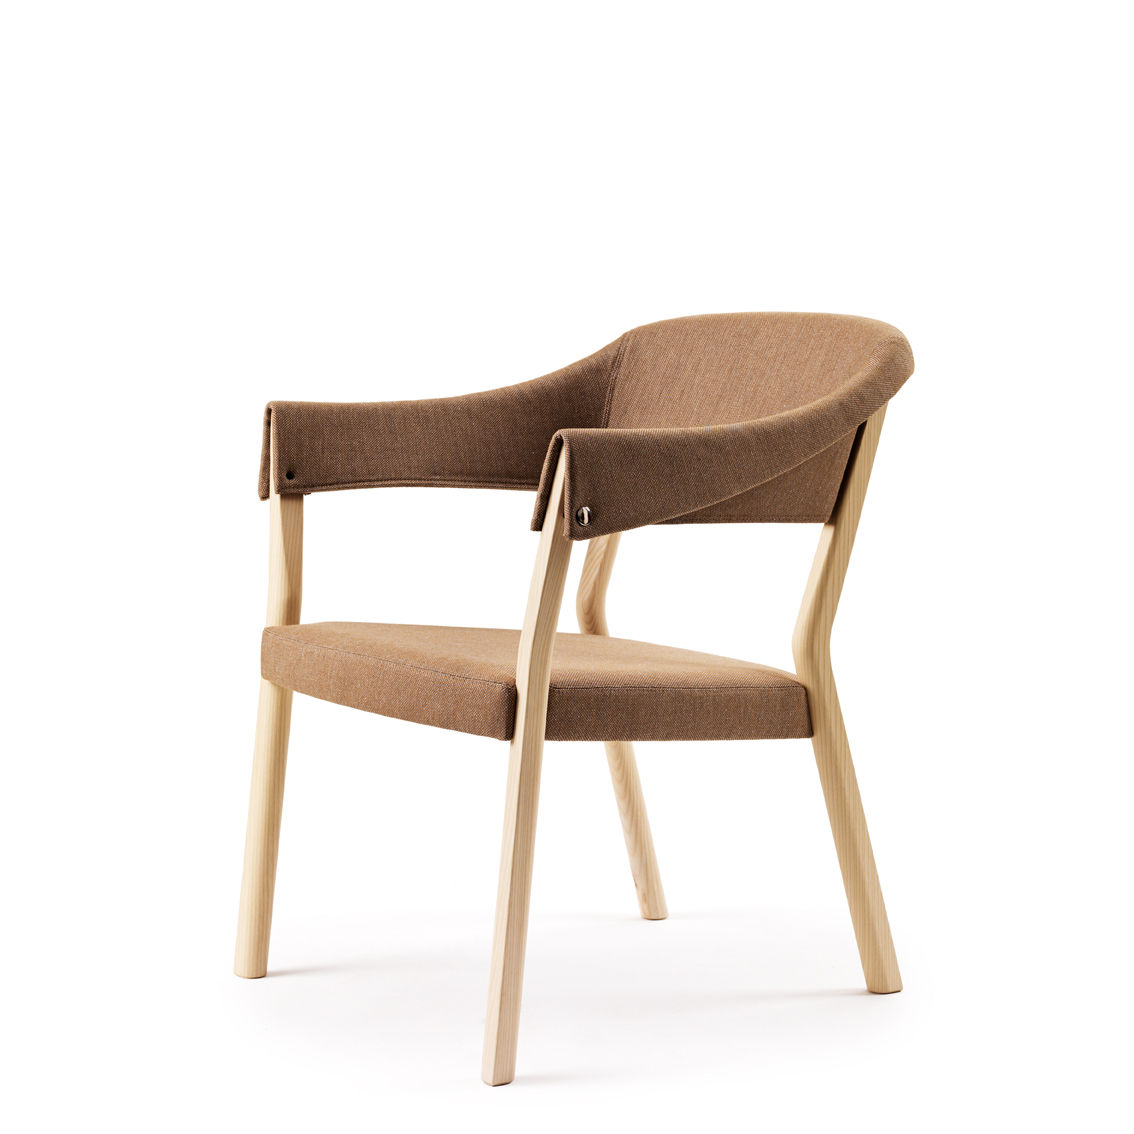 Pierre Sindre continues to add slight modifications to his well-received Button chair (2008); this season it reappears in fabric, felt or leather.